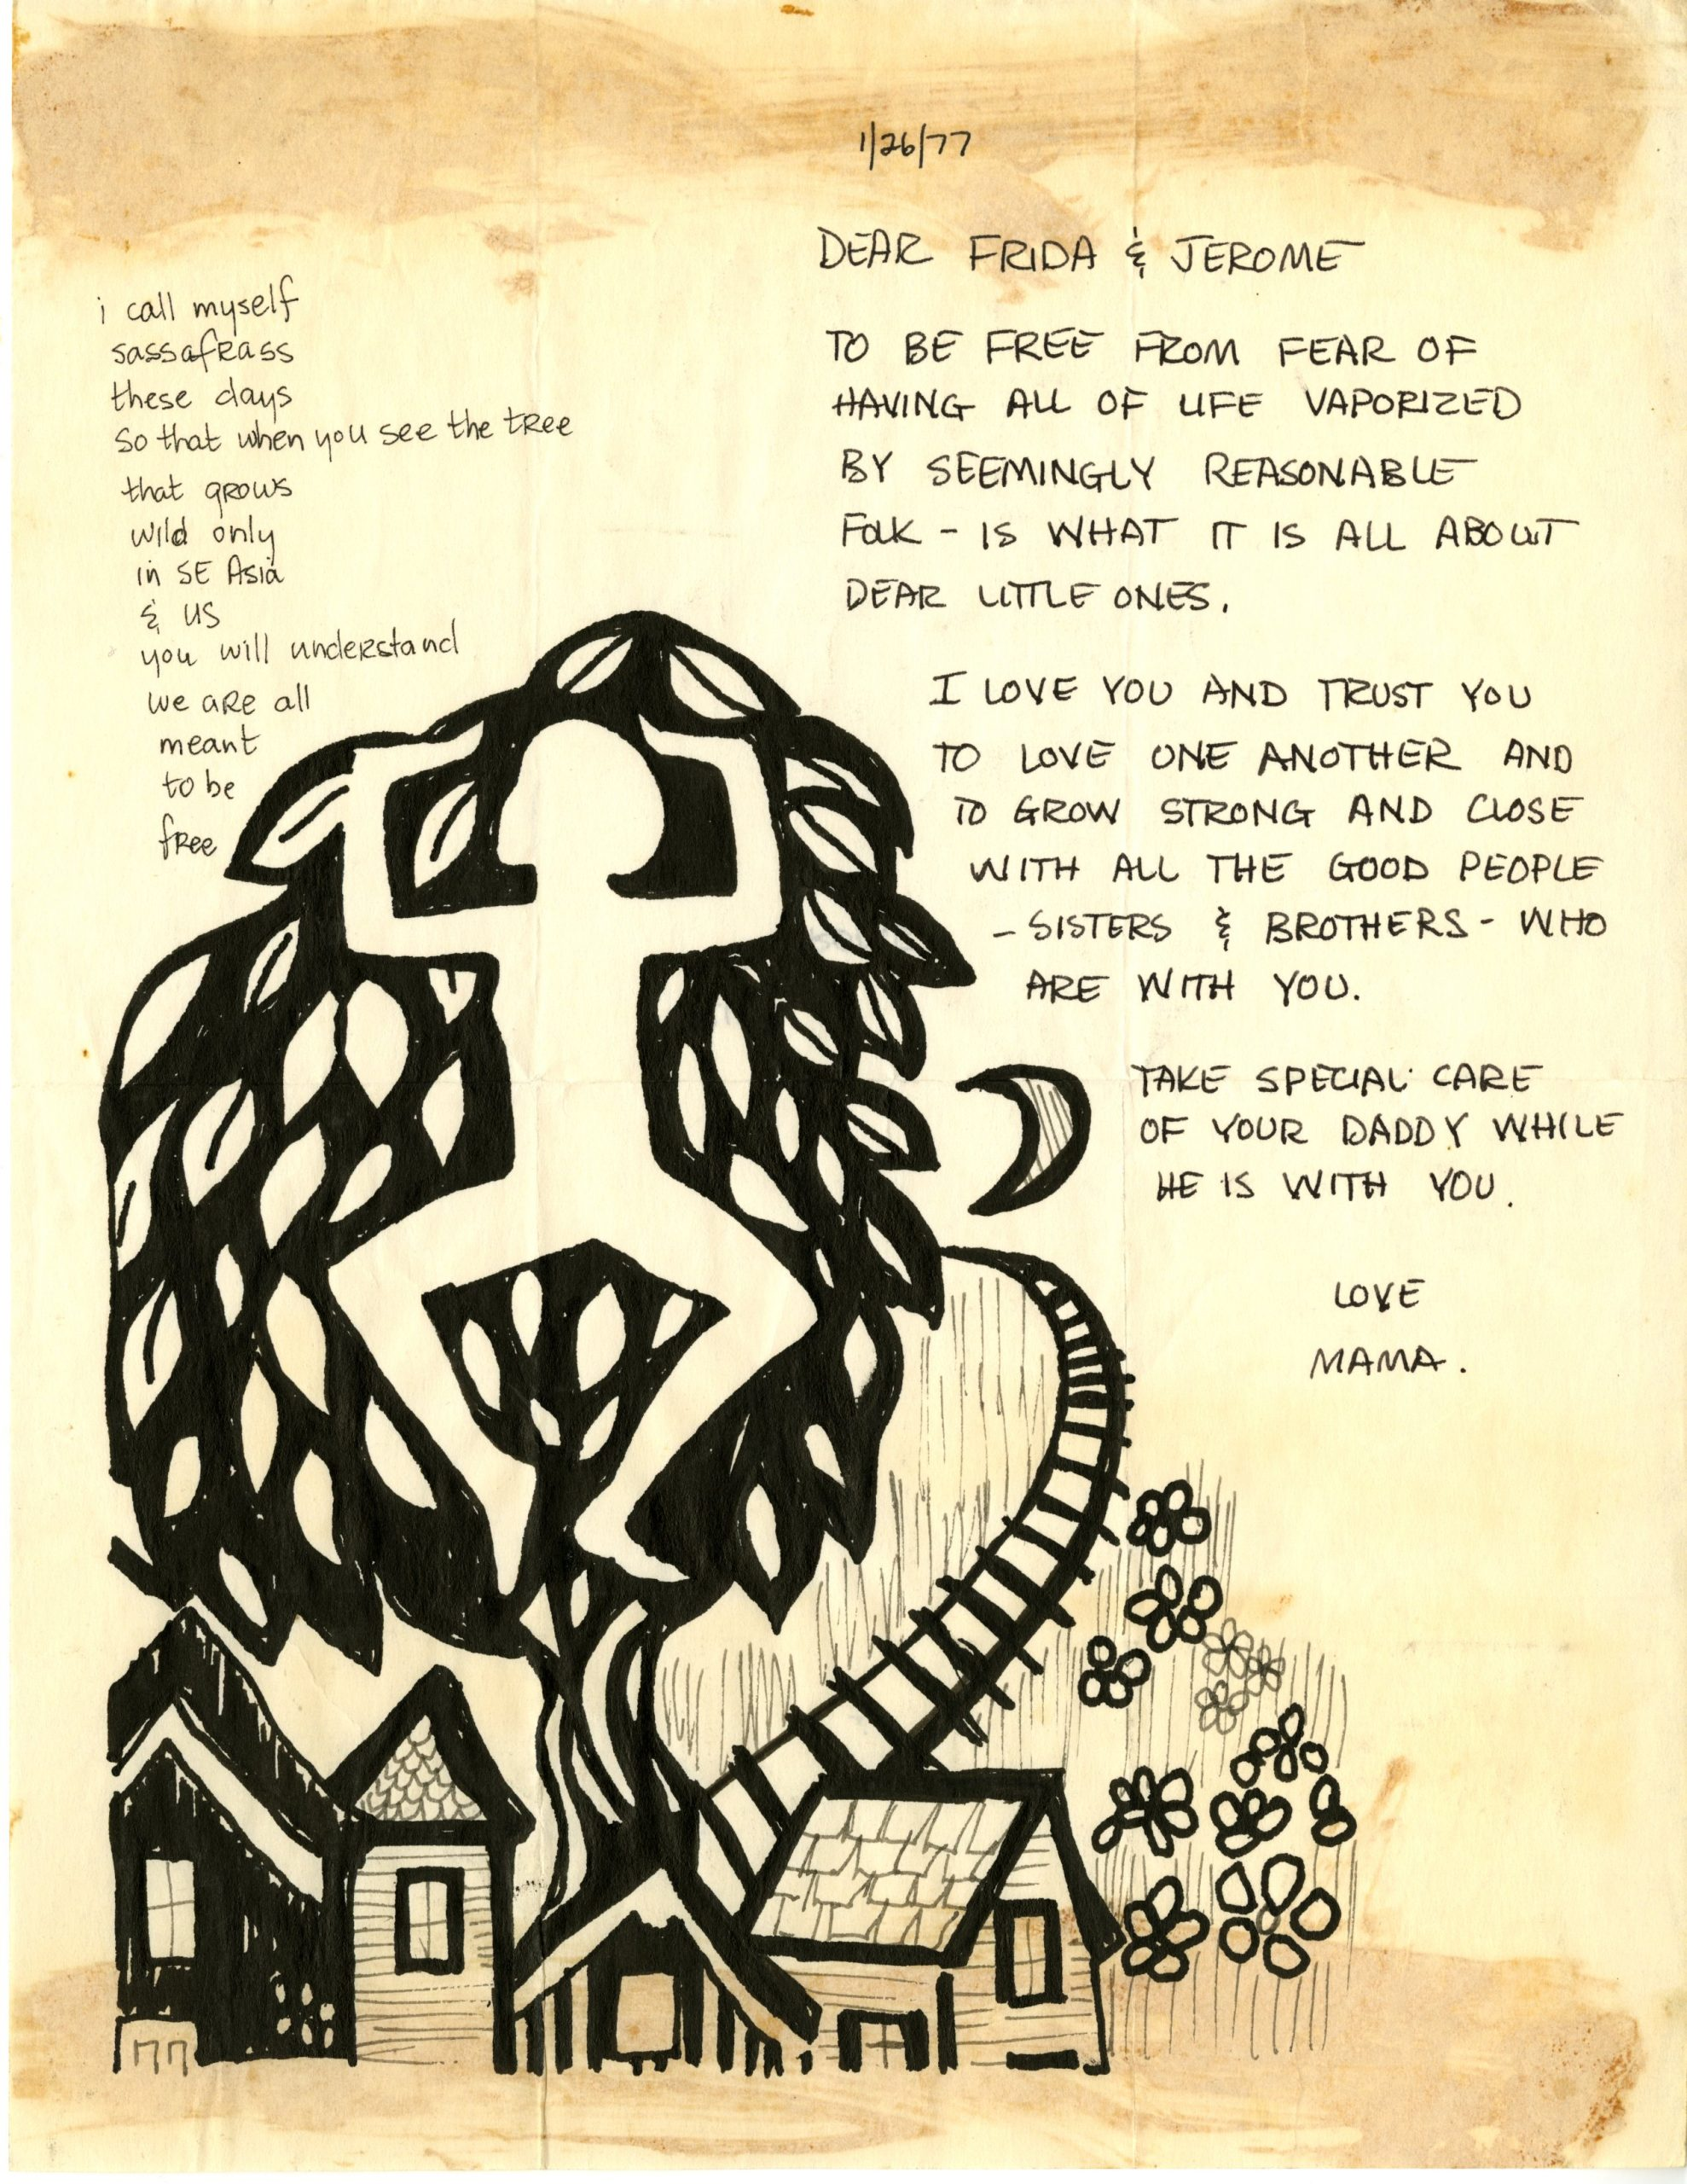 Letter from Liz McAlister to her children, Frida and Jerome Berrigan, while she was incarcerated. Page features a poem in the top left corner and a drawing of homes, flowers, and a person trying to break out of the canopy of a tree.